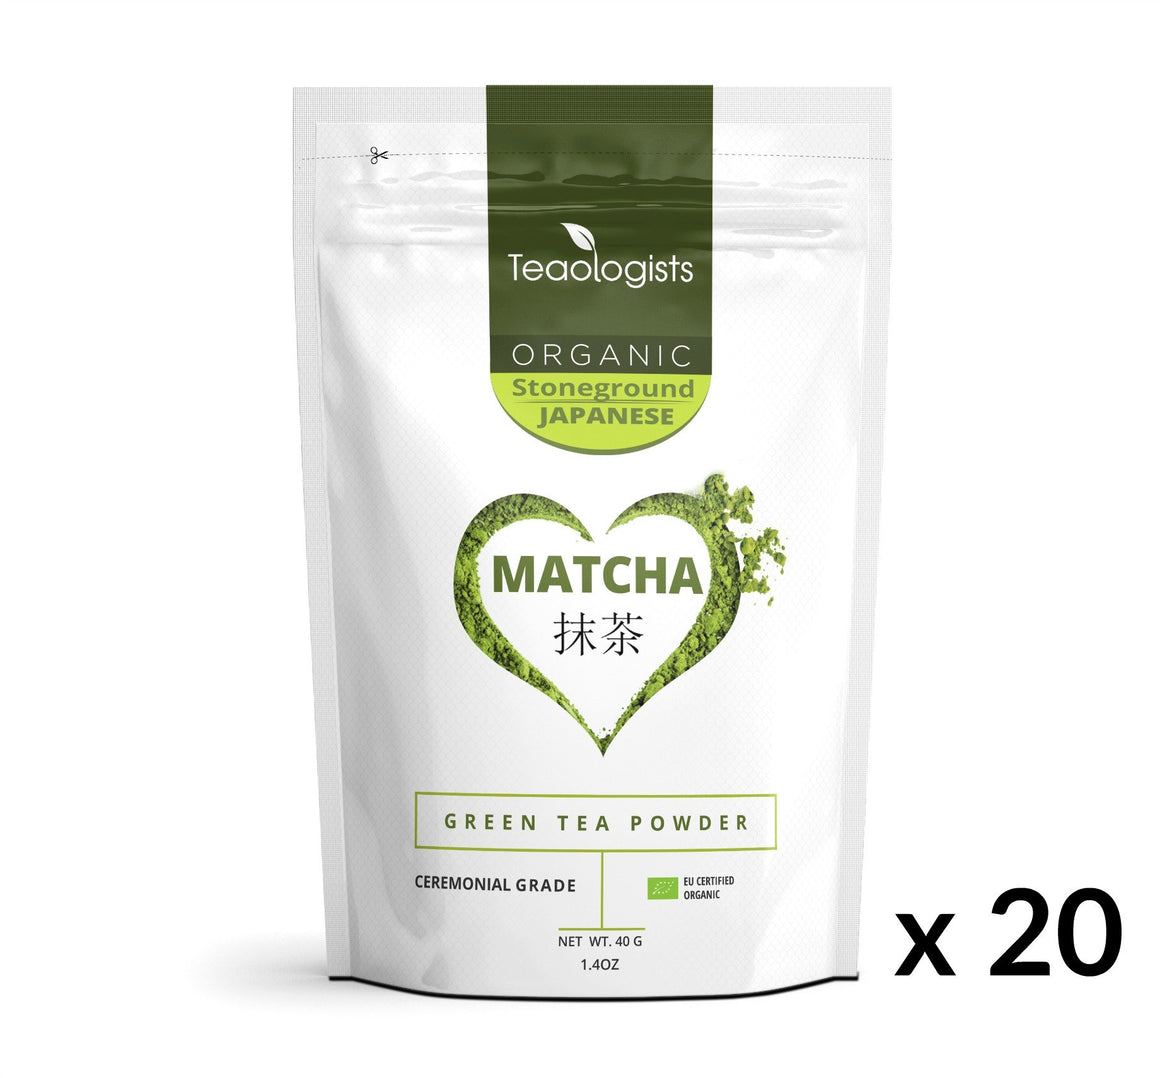 Matcha Green Tea - Organic Japanese Ceremonial Grade BULK BUY 800g (20 x 40g)